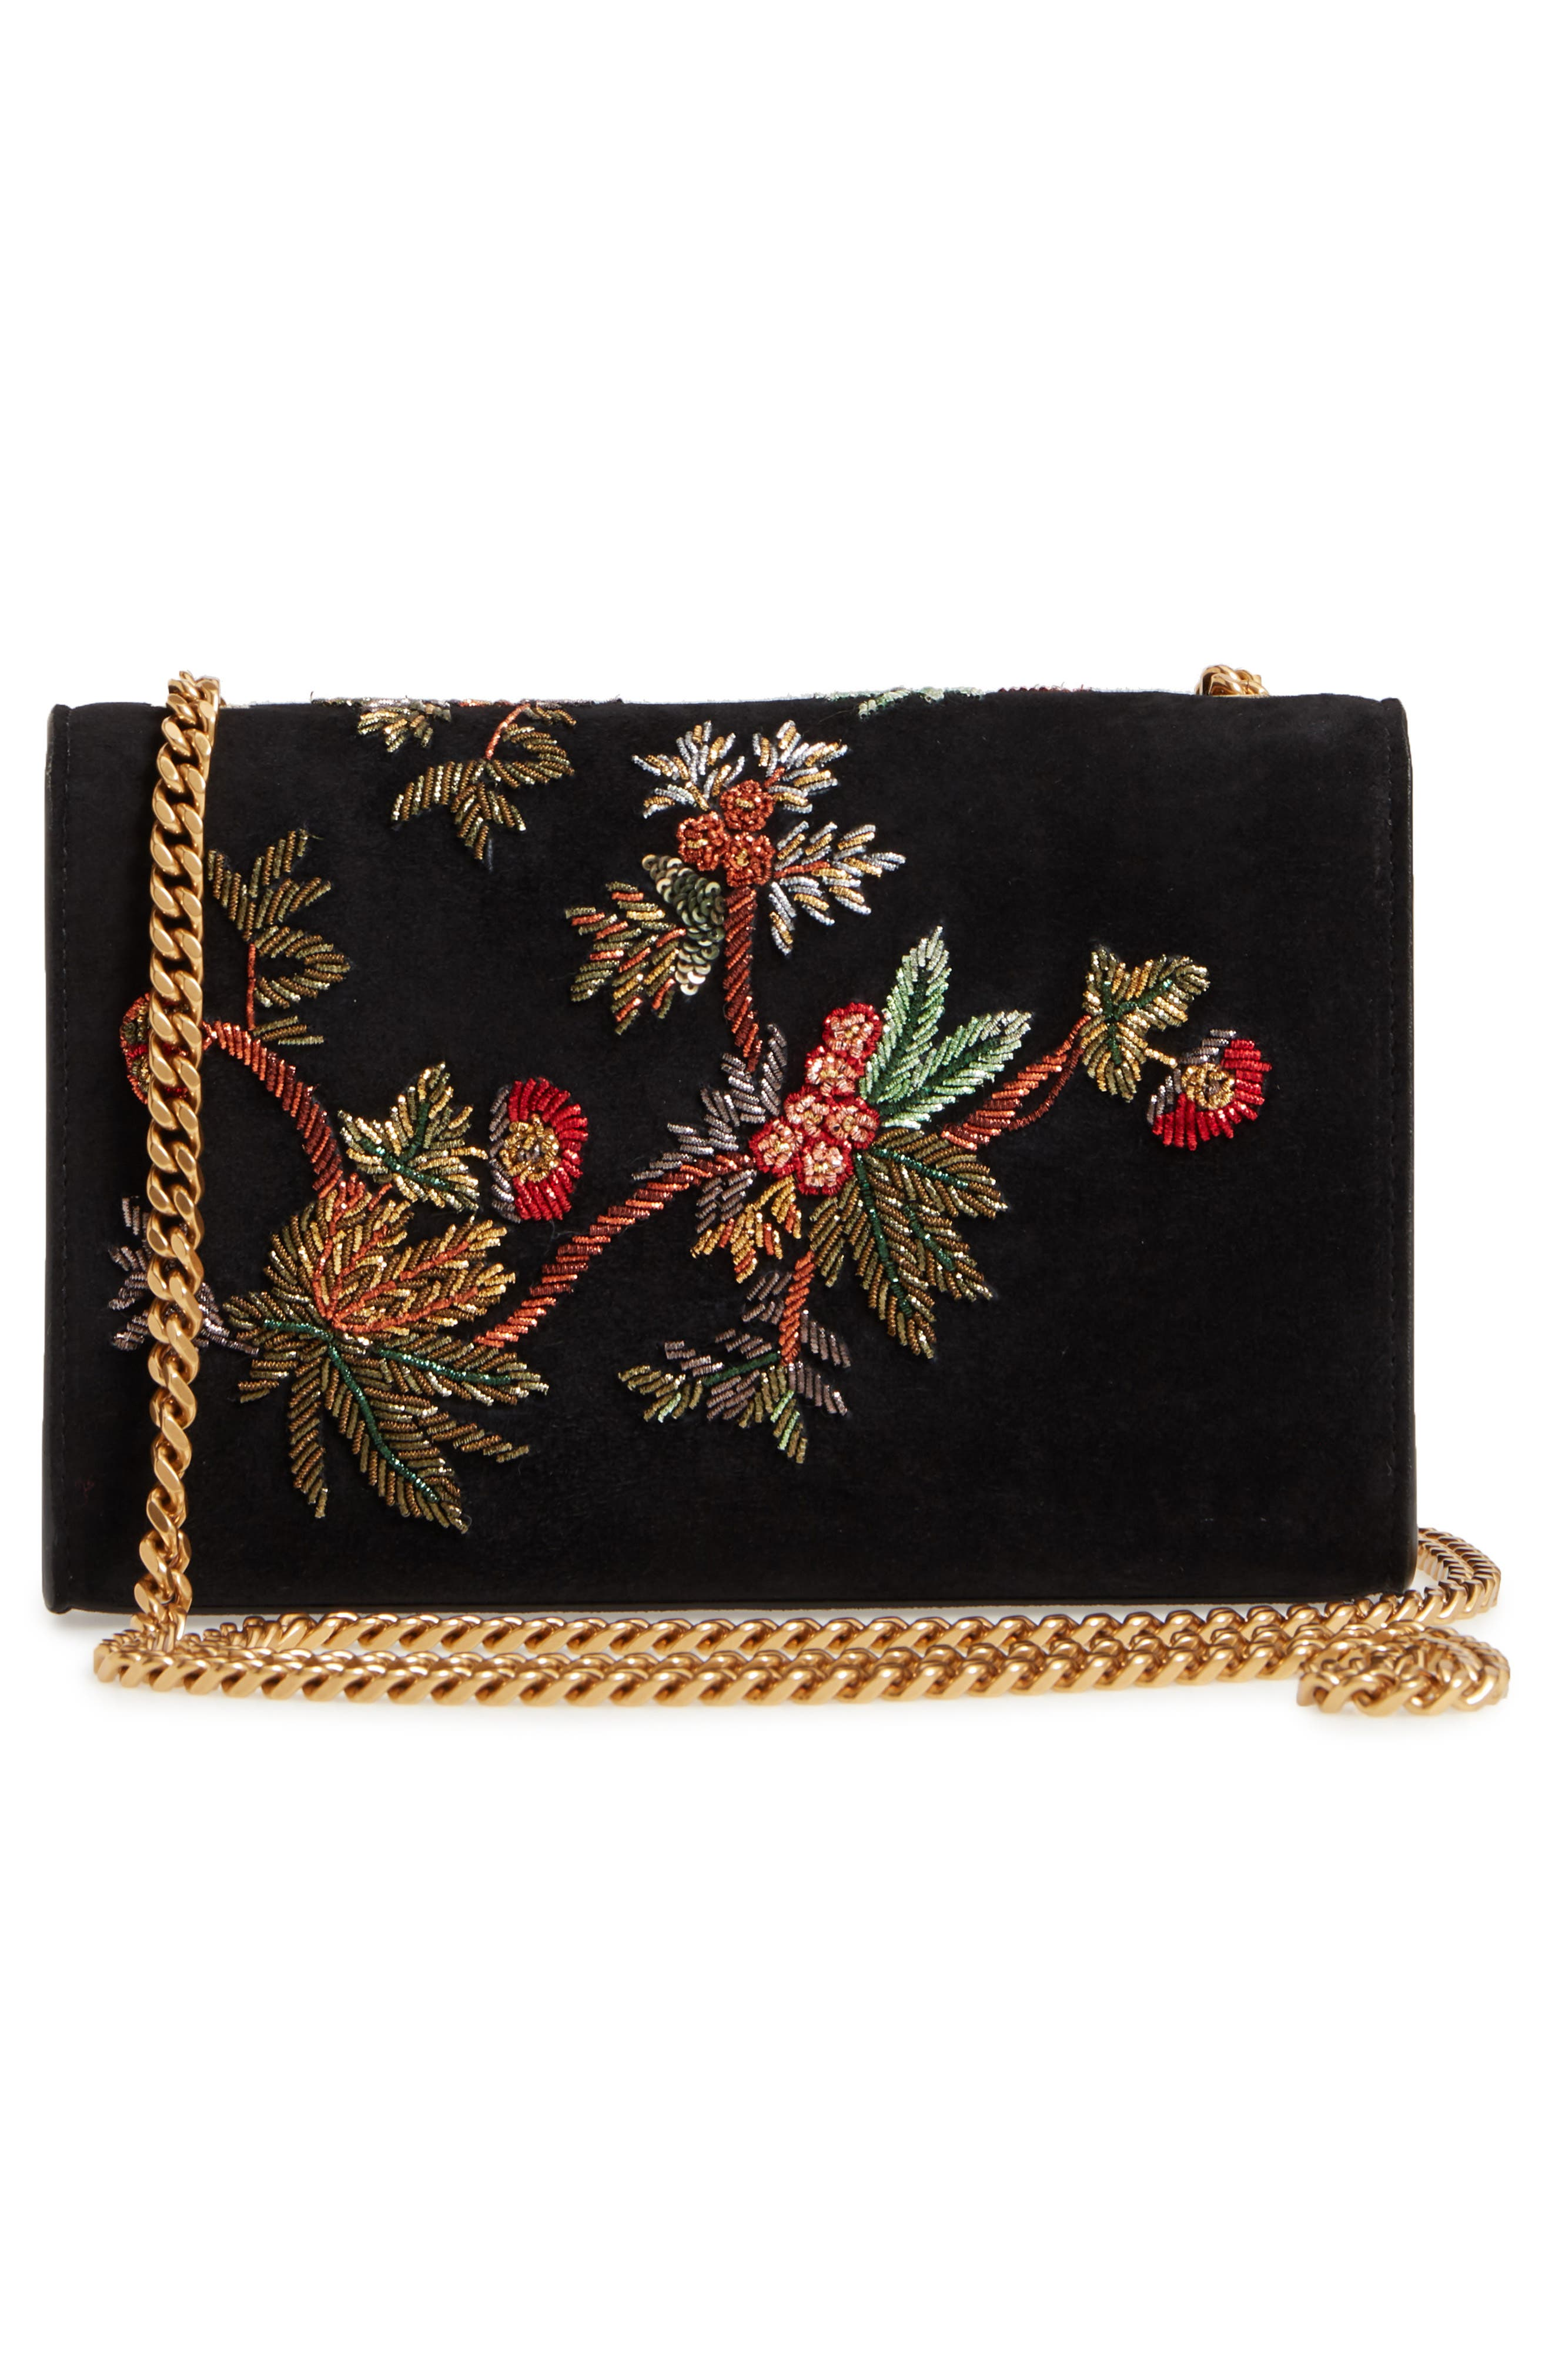 SAINT LAURENT,                             Small Kate Embroidered Suede Crossbody Bag,                             Alternate thumbnail 3, color,                             001